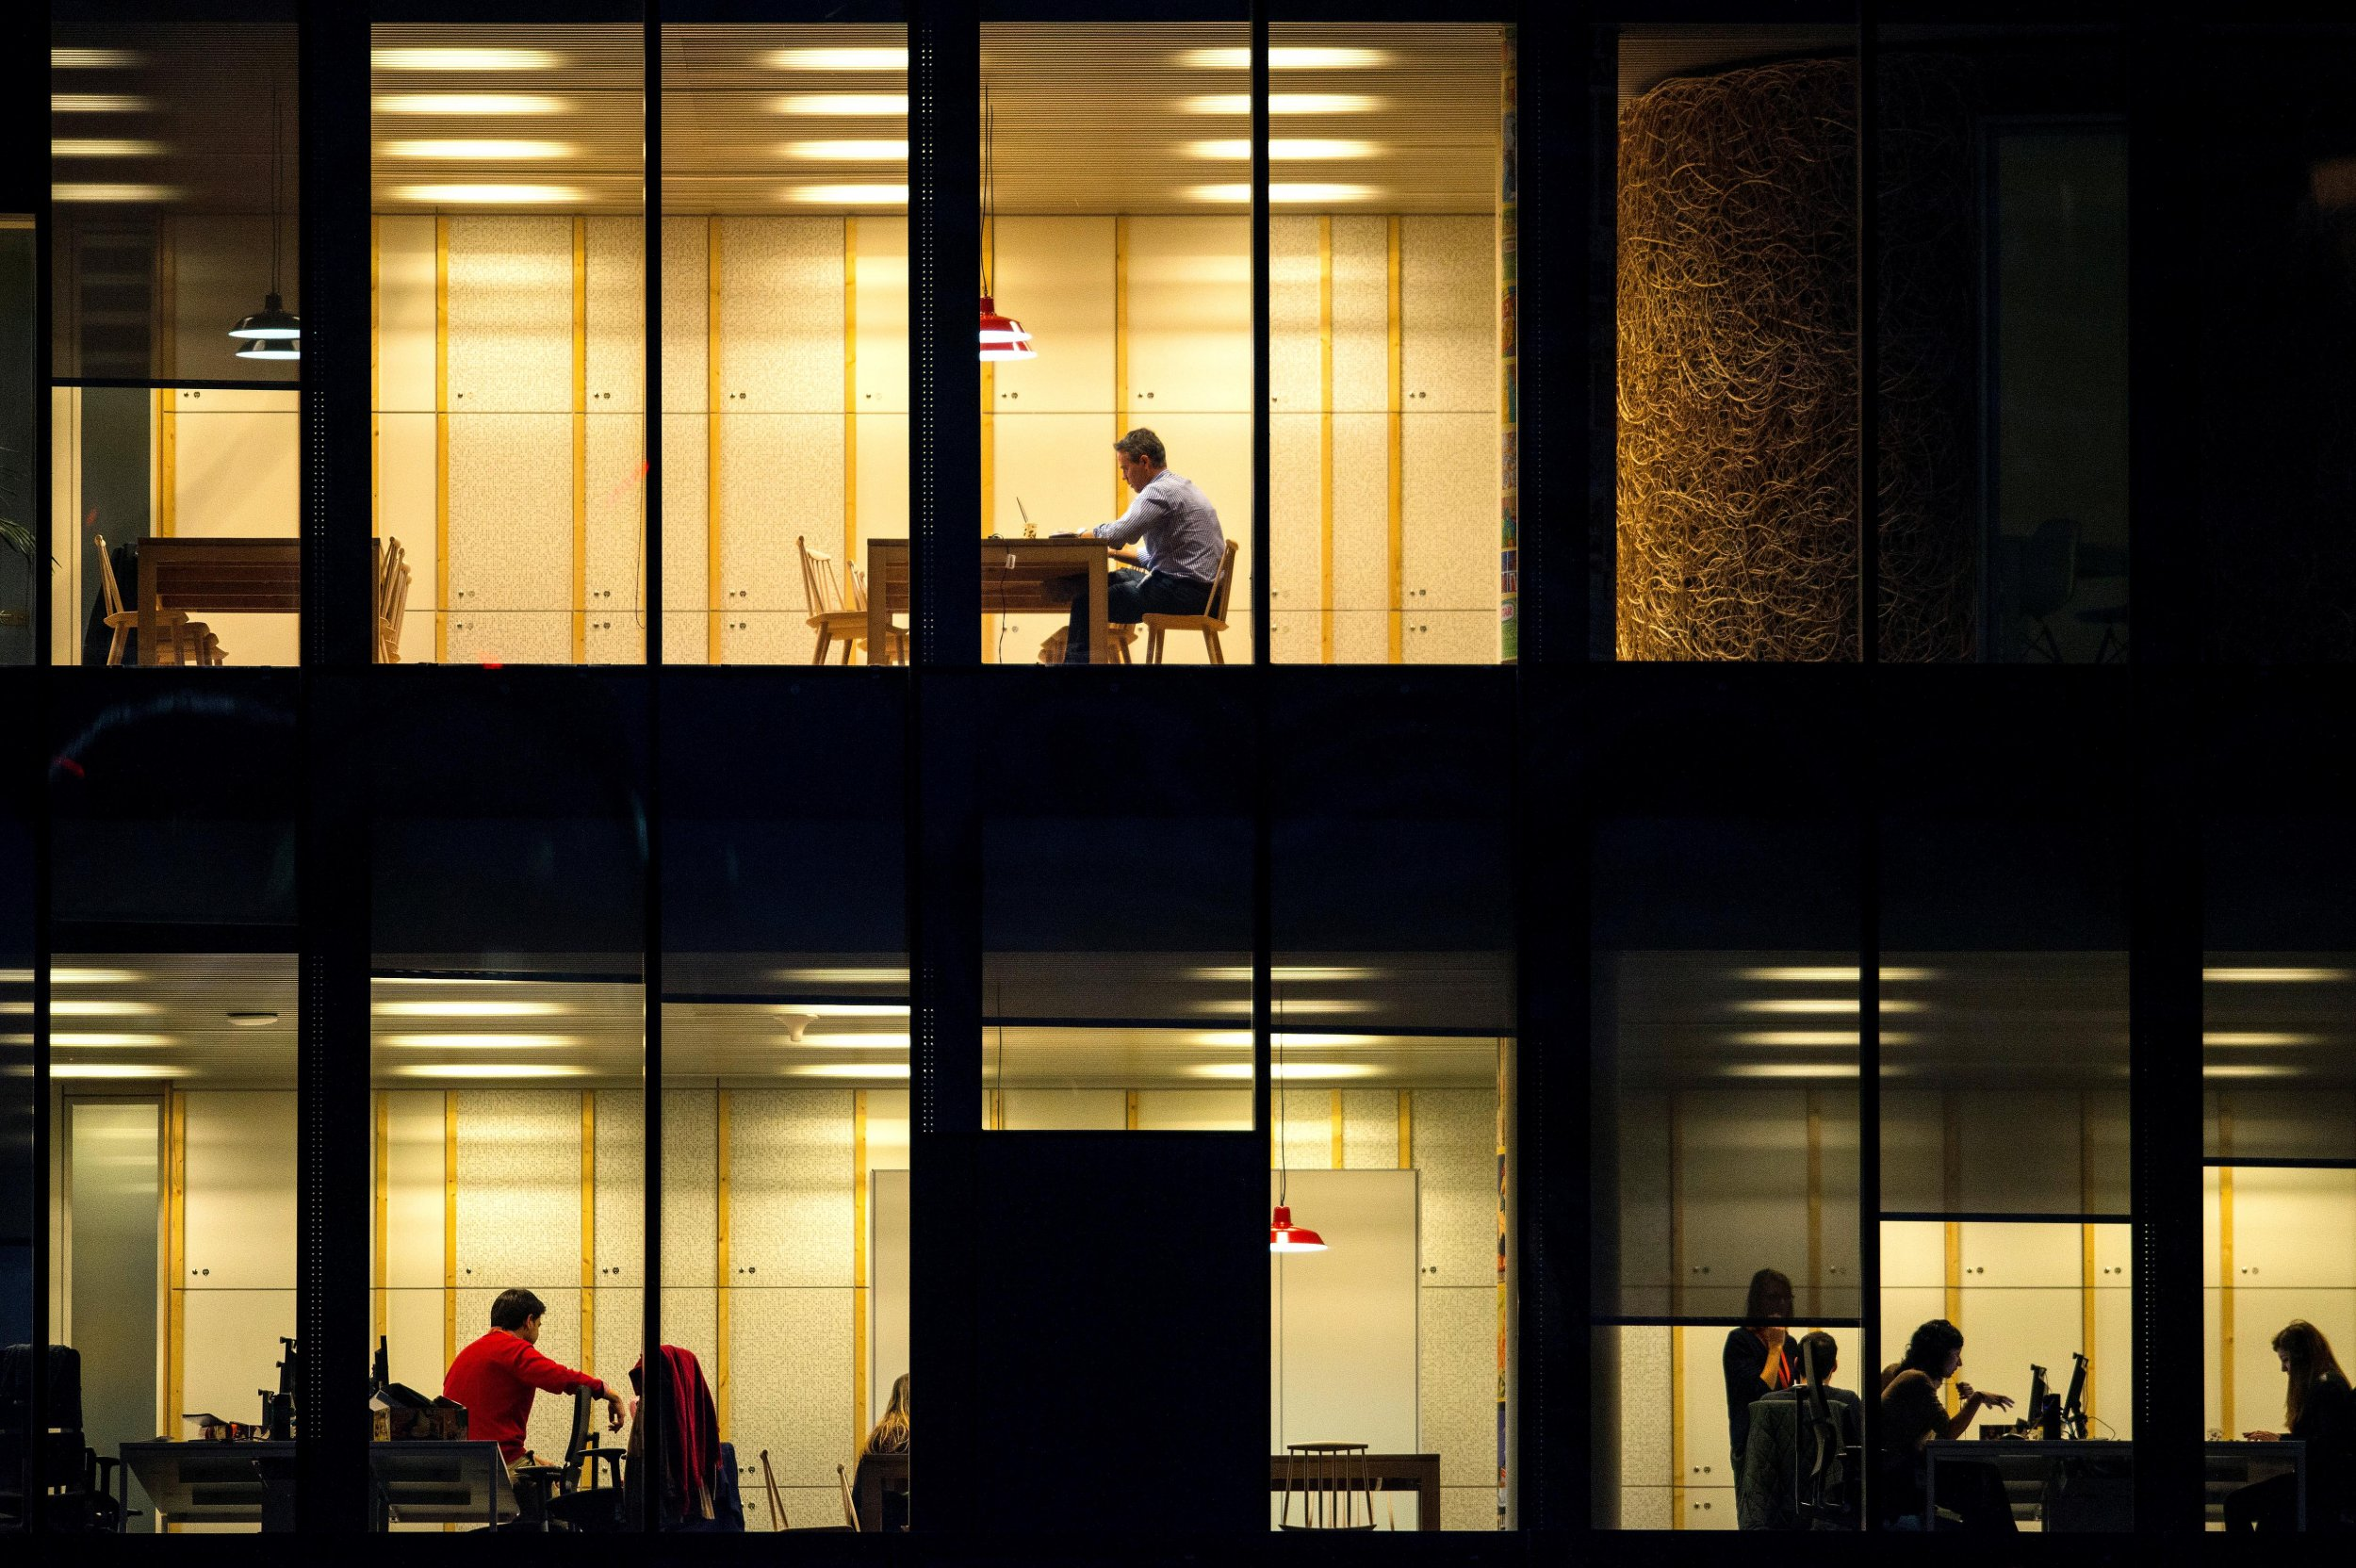 01_08_office_workers_01